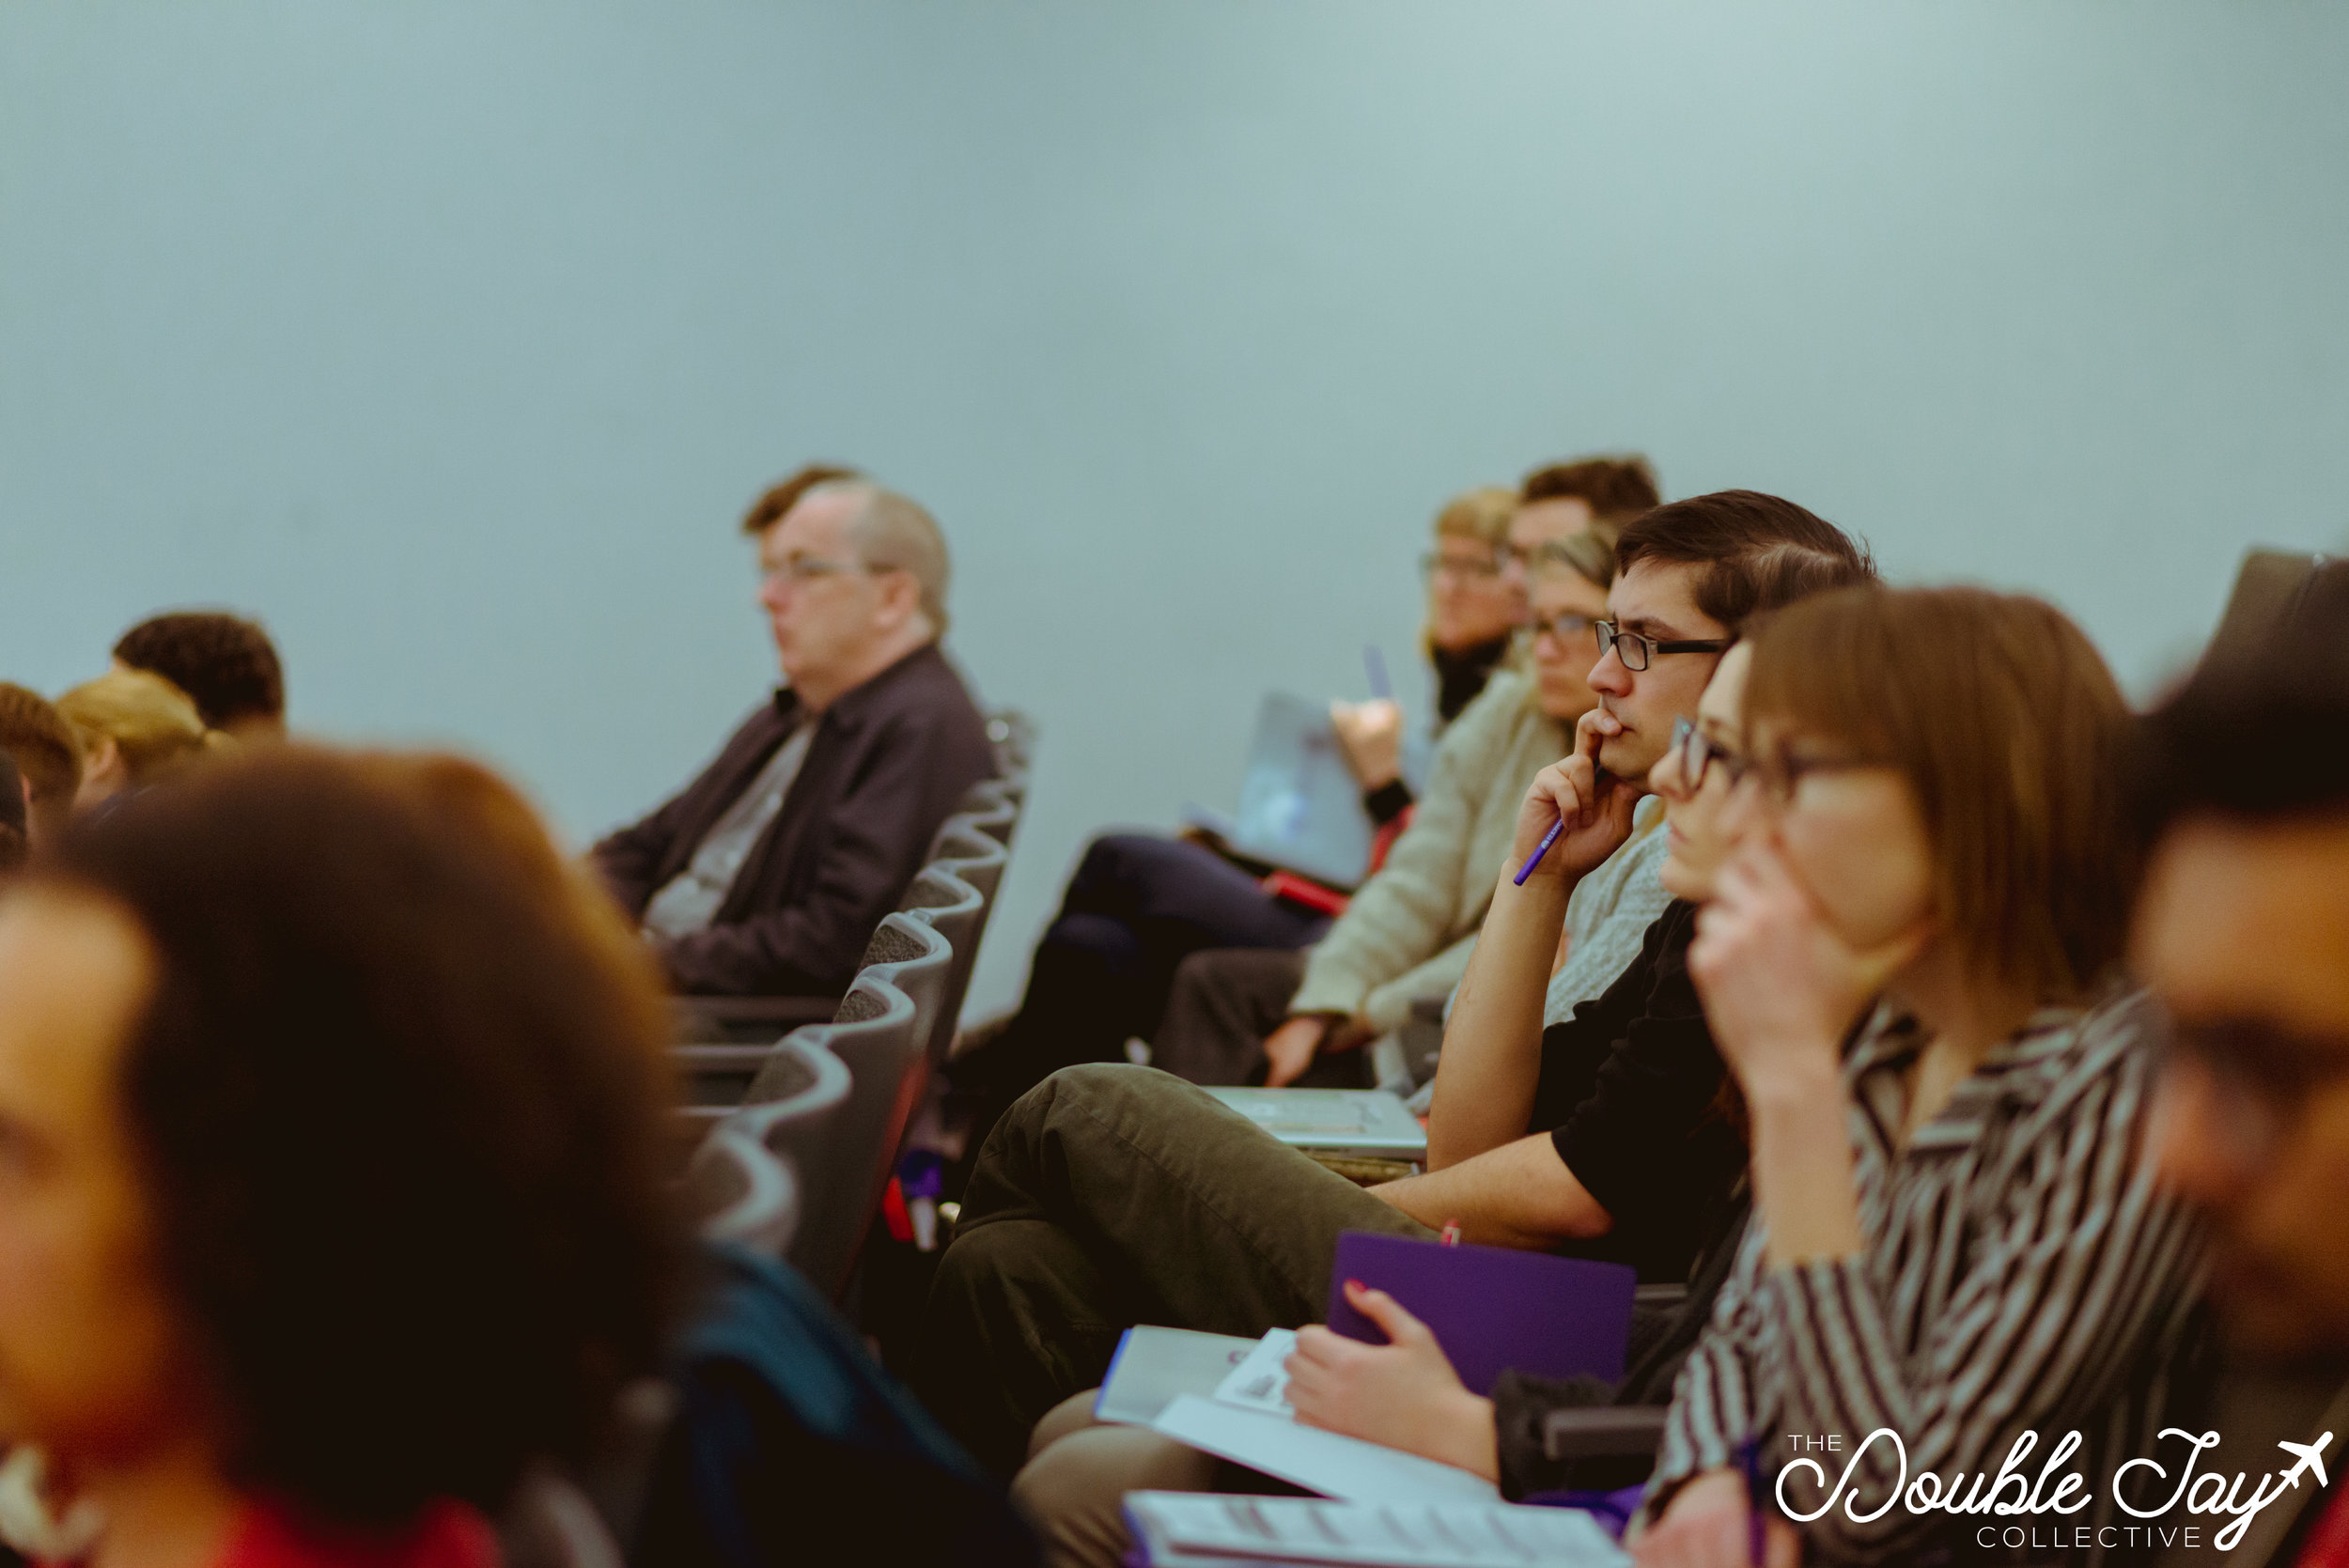 All weekend, the conference continuously maintained an attentive and engaged audience.